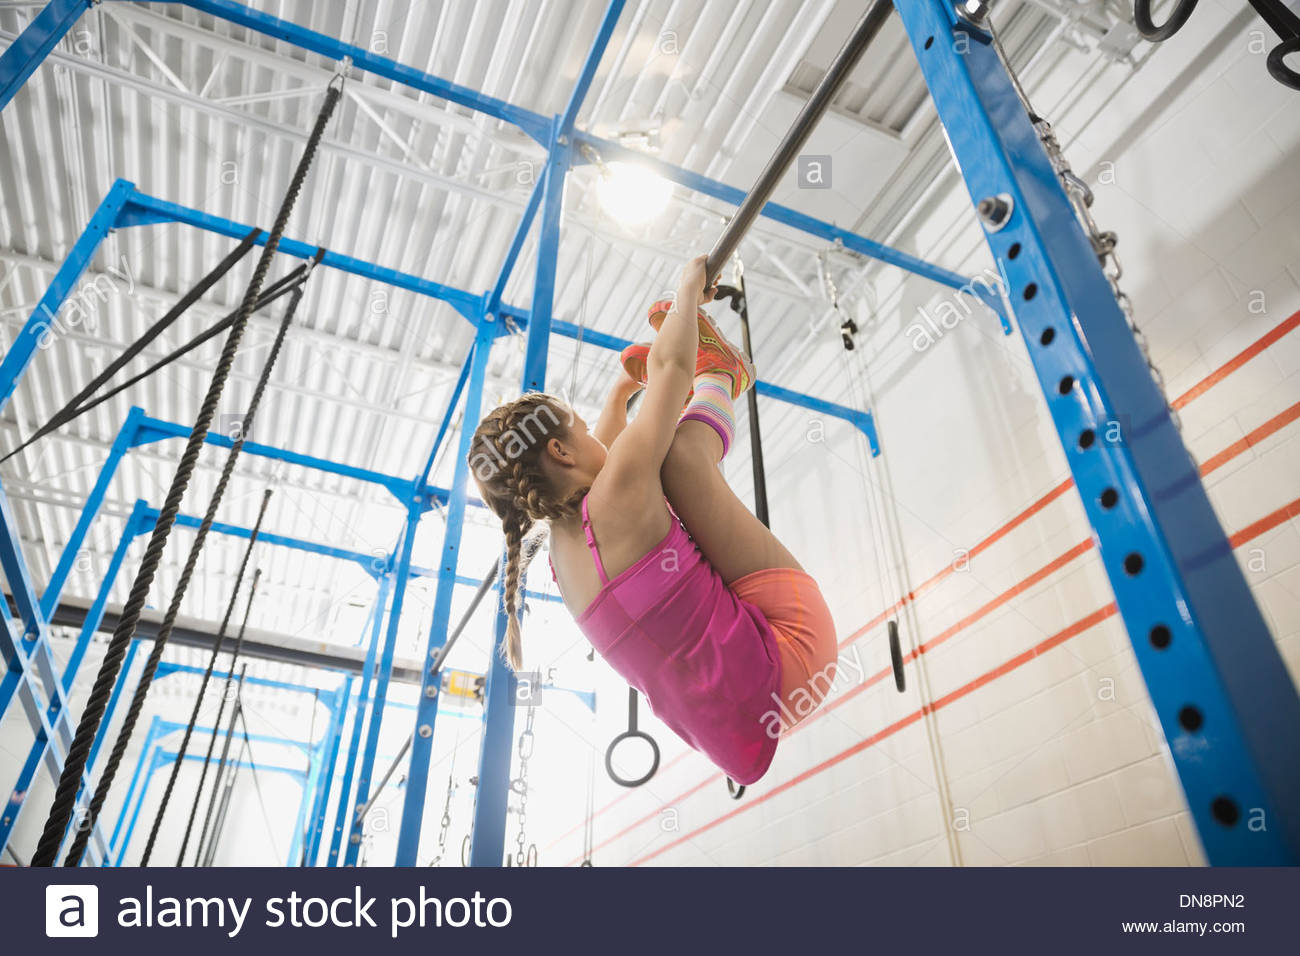 Girl practicing toes-to-bar move - Stock Image